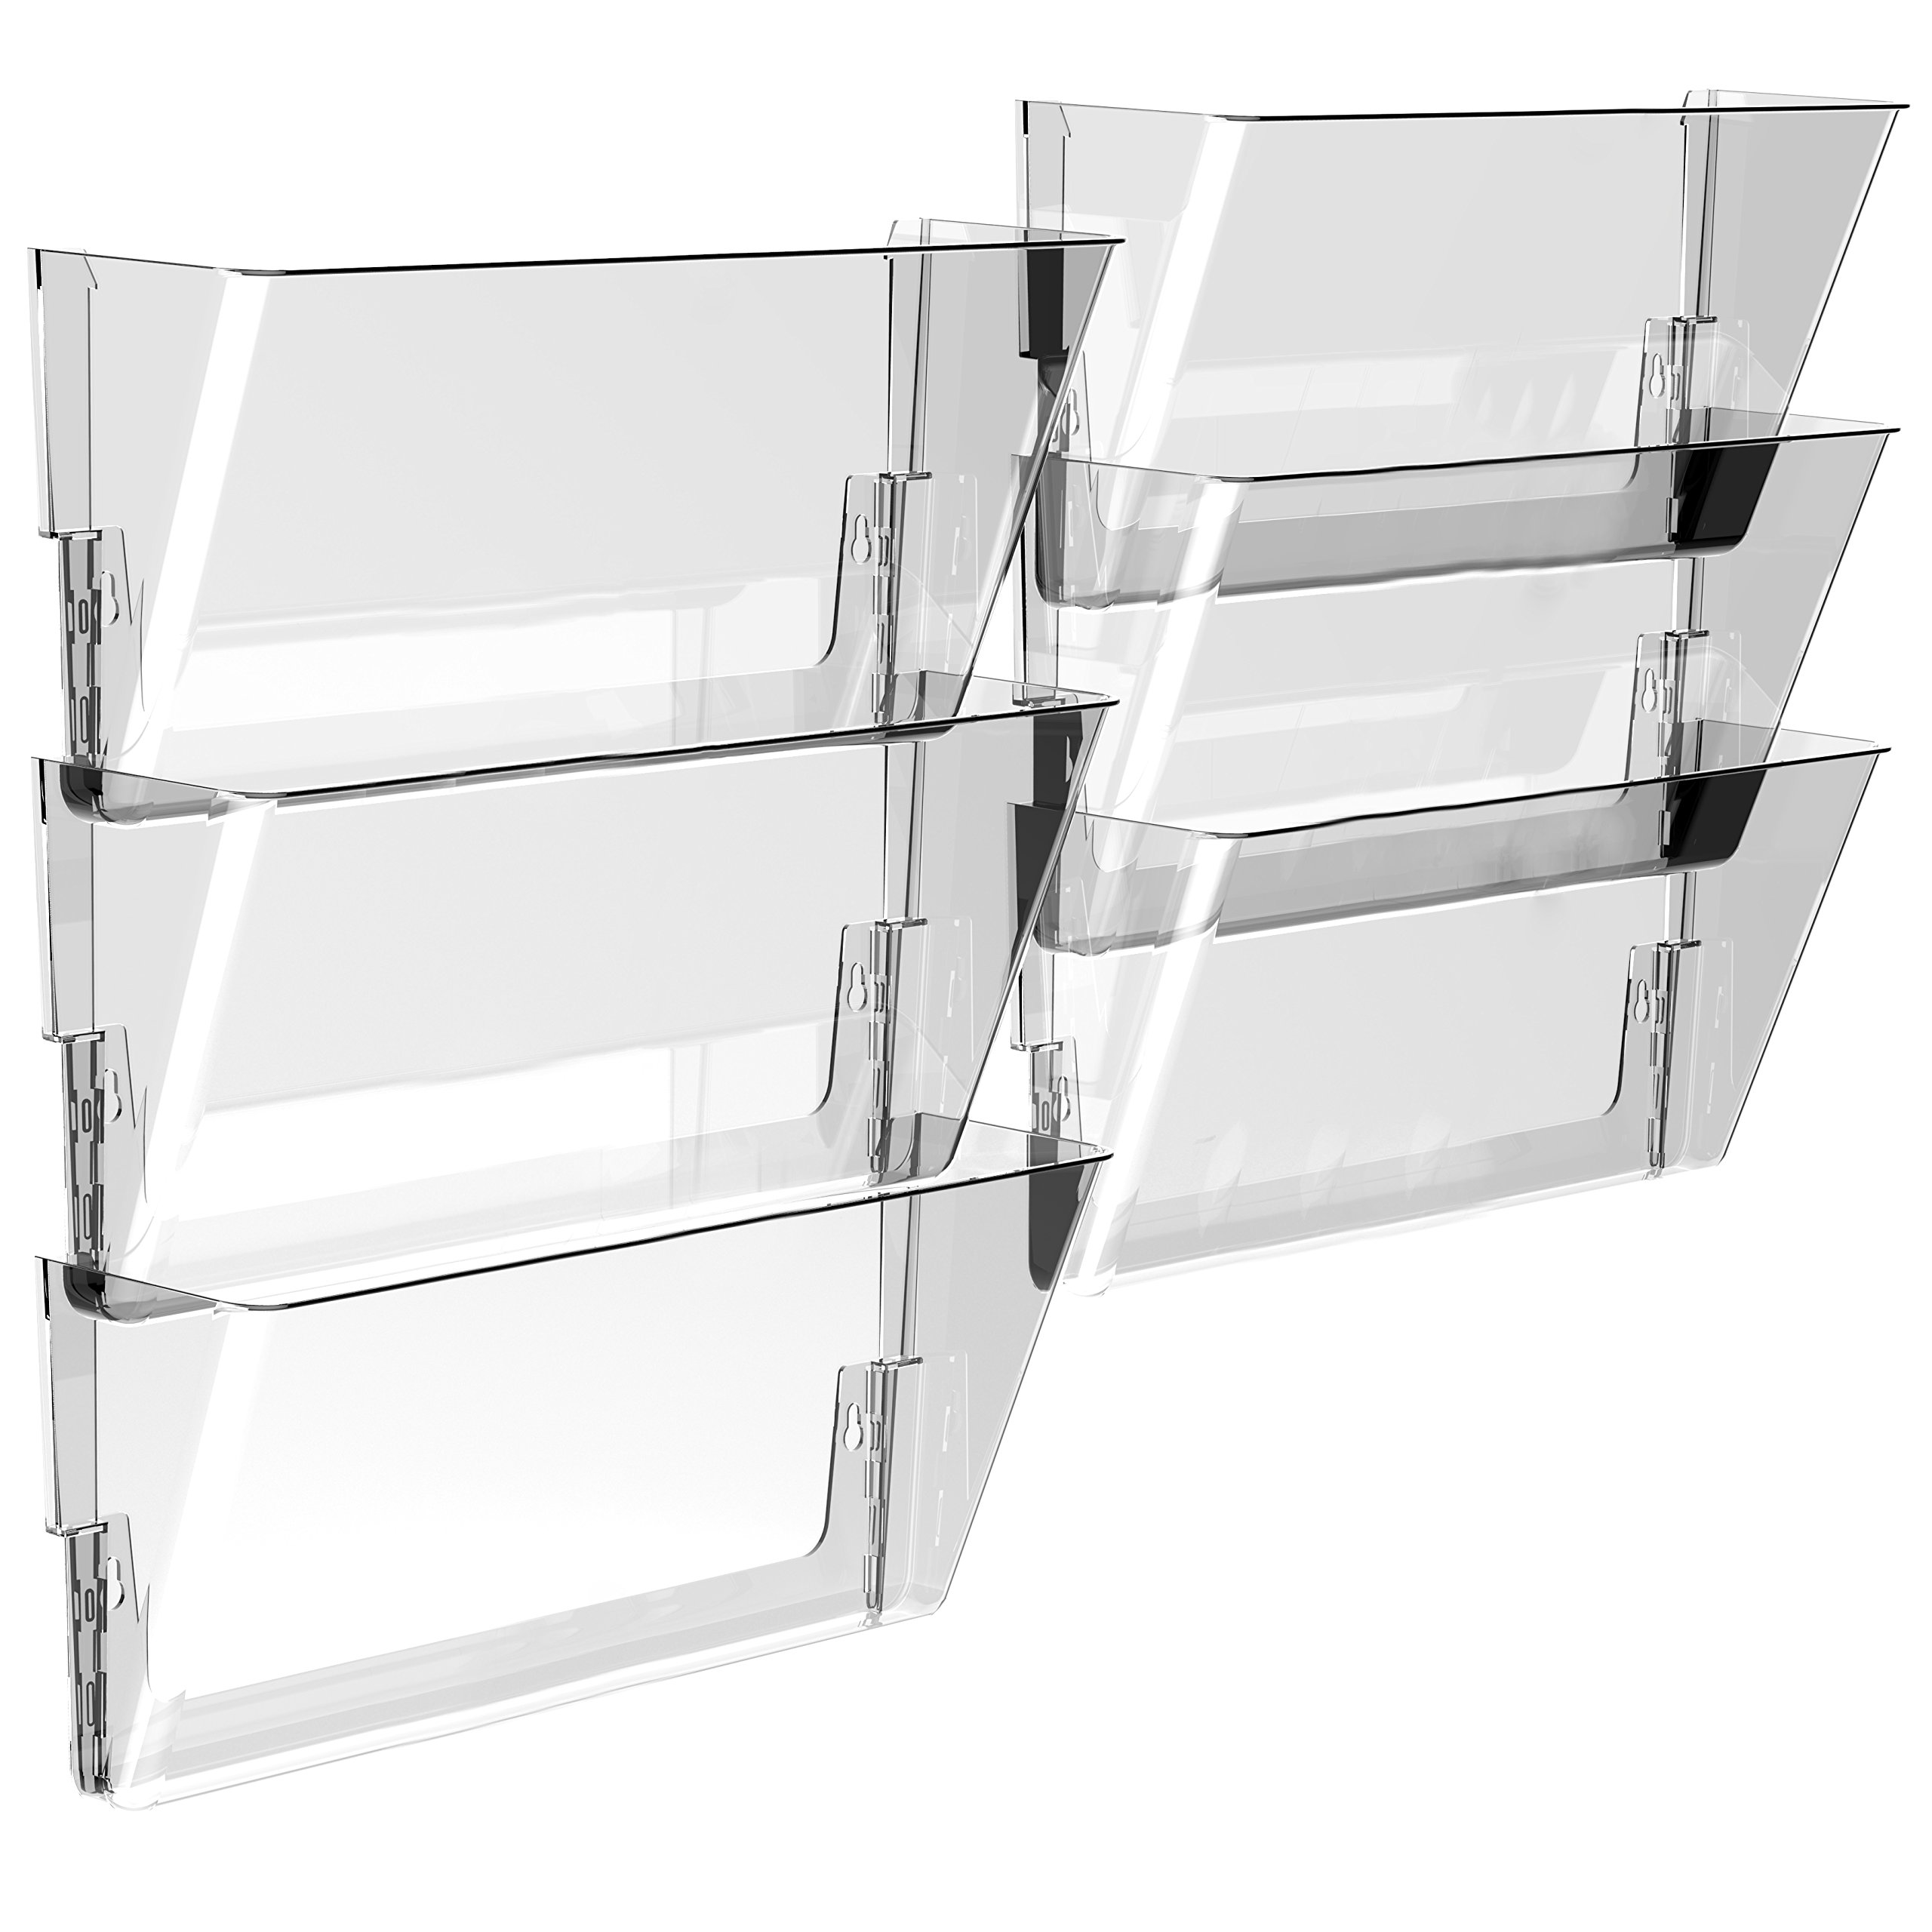 Storex Wall File, 16 x 4 x 7 Inches, Legal, Clear, Case of 6 (70207U06C)